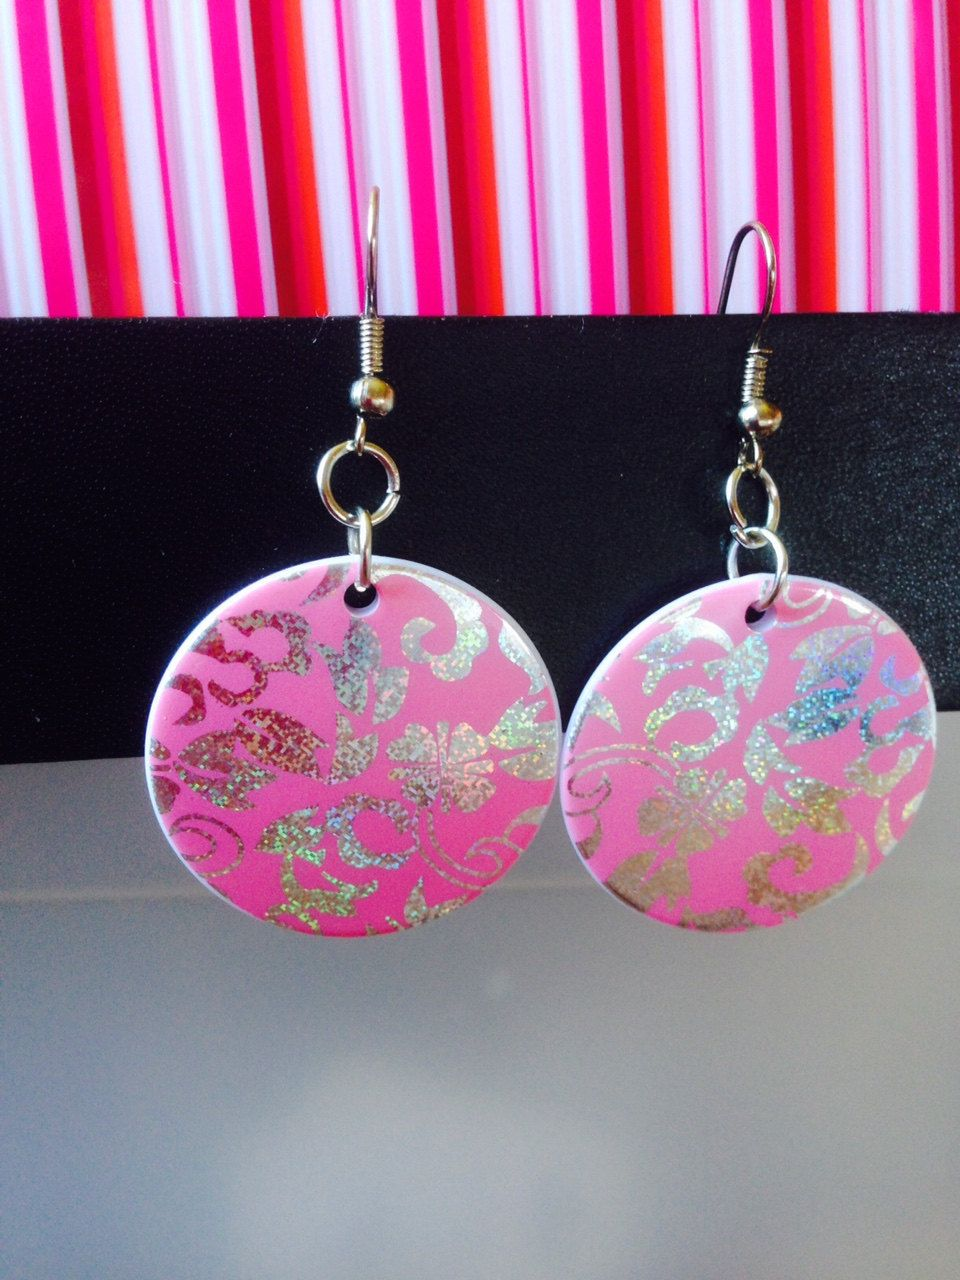 Earrings ~ Bright Pink Disc Earrings ~ holographic silver floral design ~ drop earrings ~ fashion jewellery ~ costume jewellery by Nerdacious on Etsy